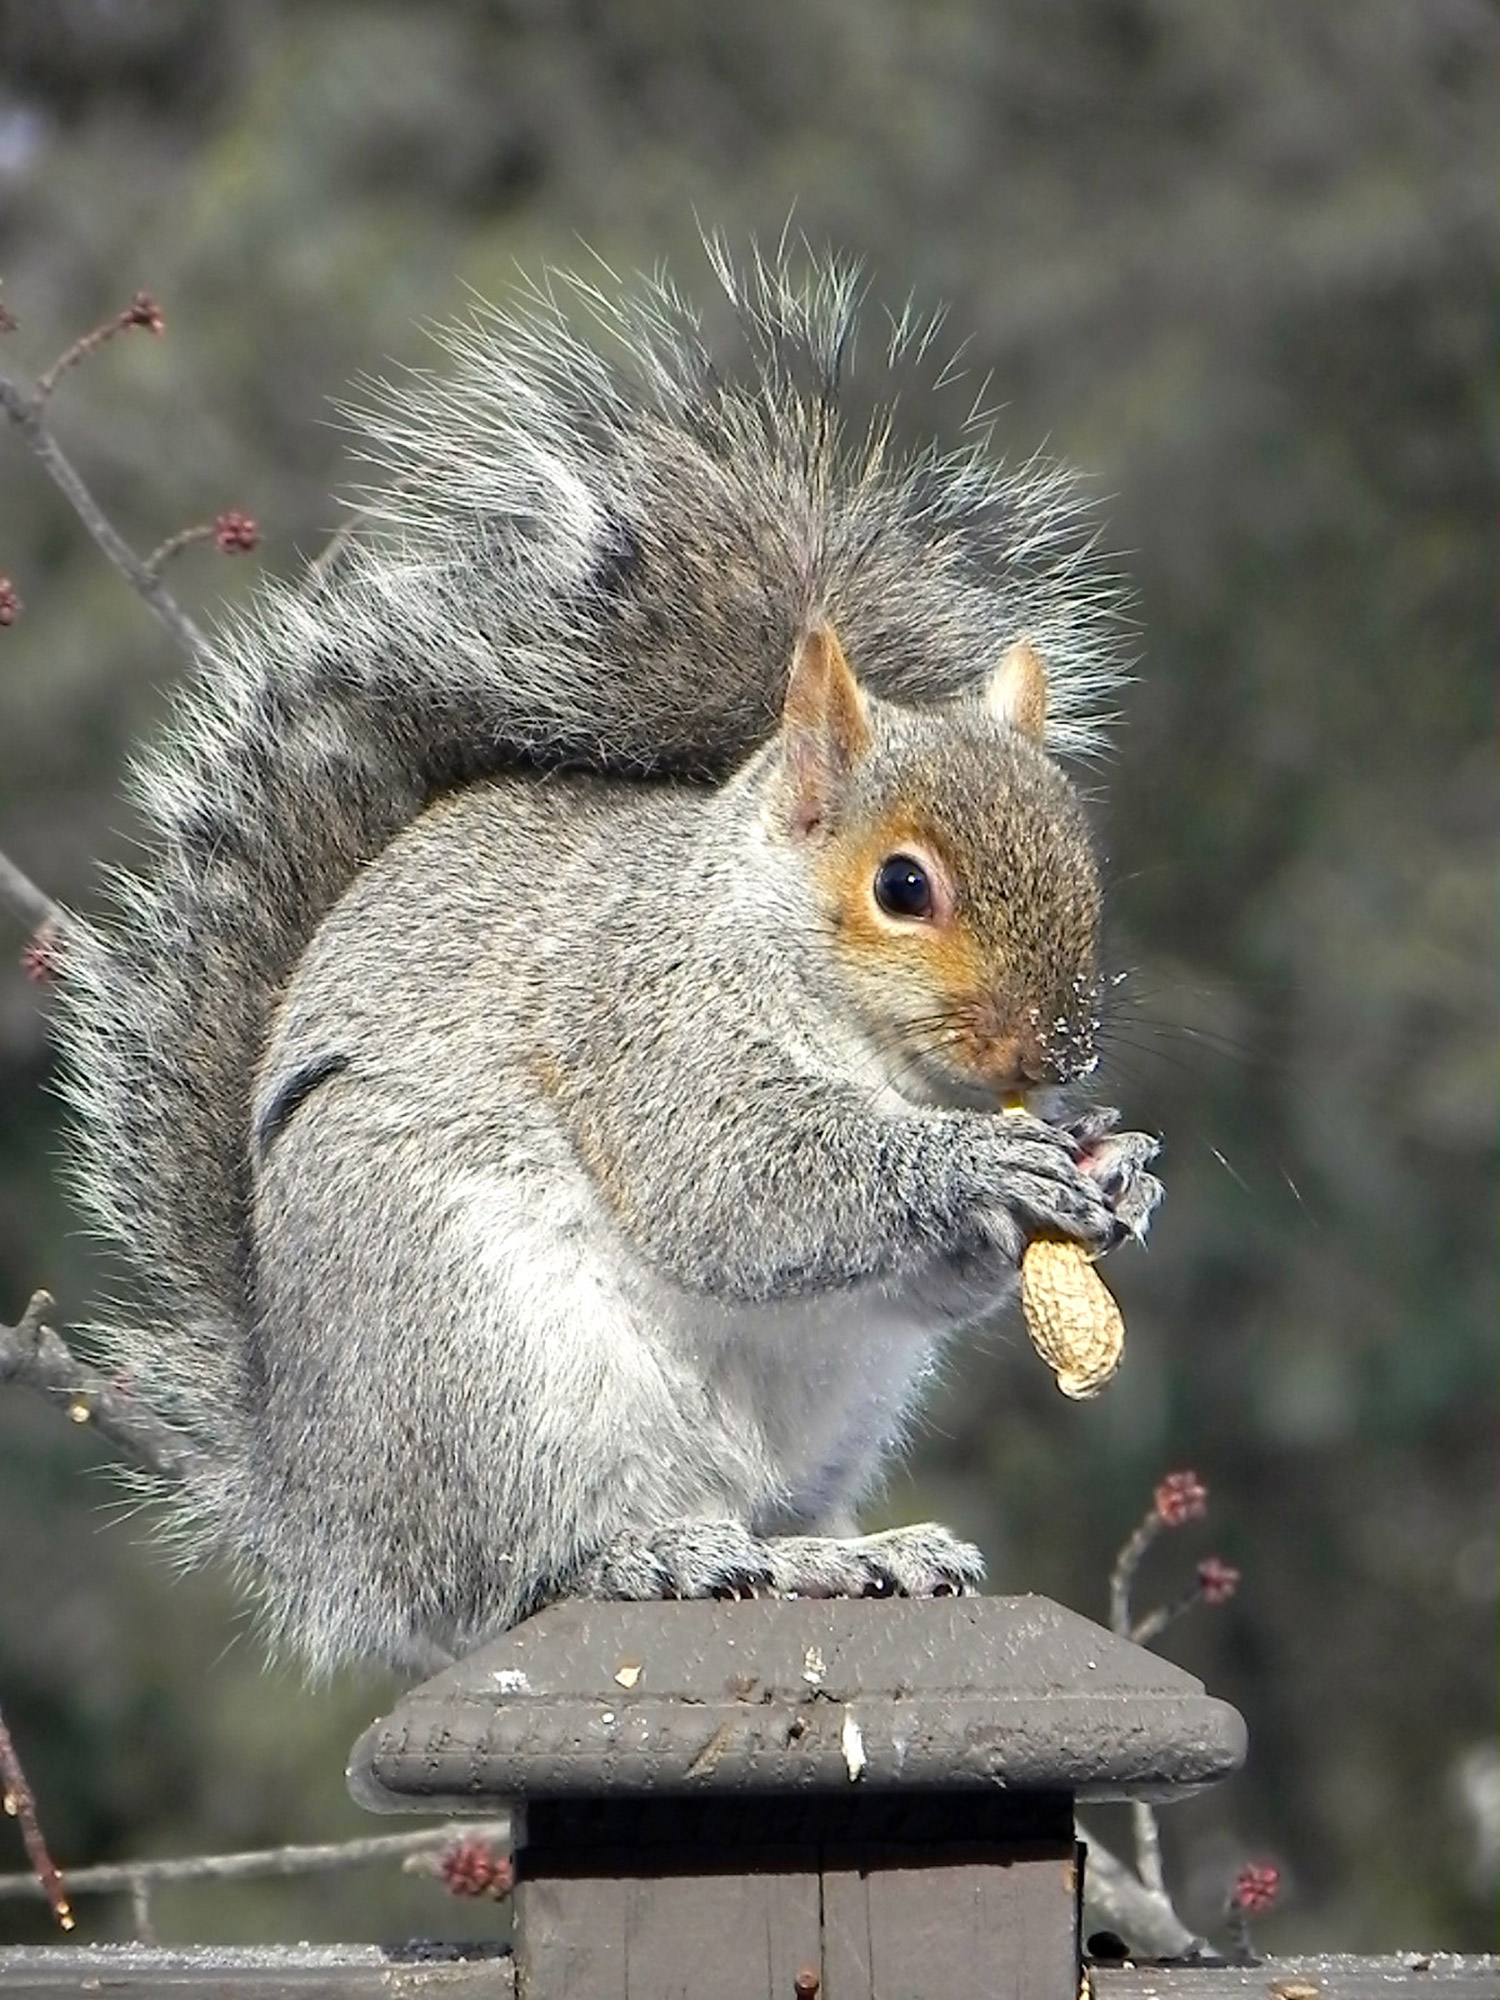 The harsh winter hasn't seemed to faze the big gray squirrel in Matthew Caiazzo's Sandy Terrace yard, where feeders sustain all kinds of birds and any other fauna that might be enterprising enough to help itself to a feeding.